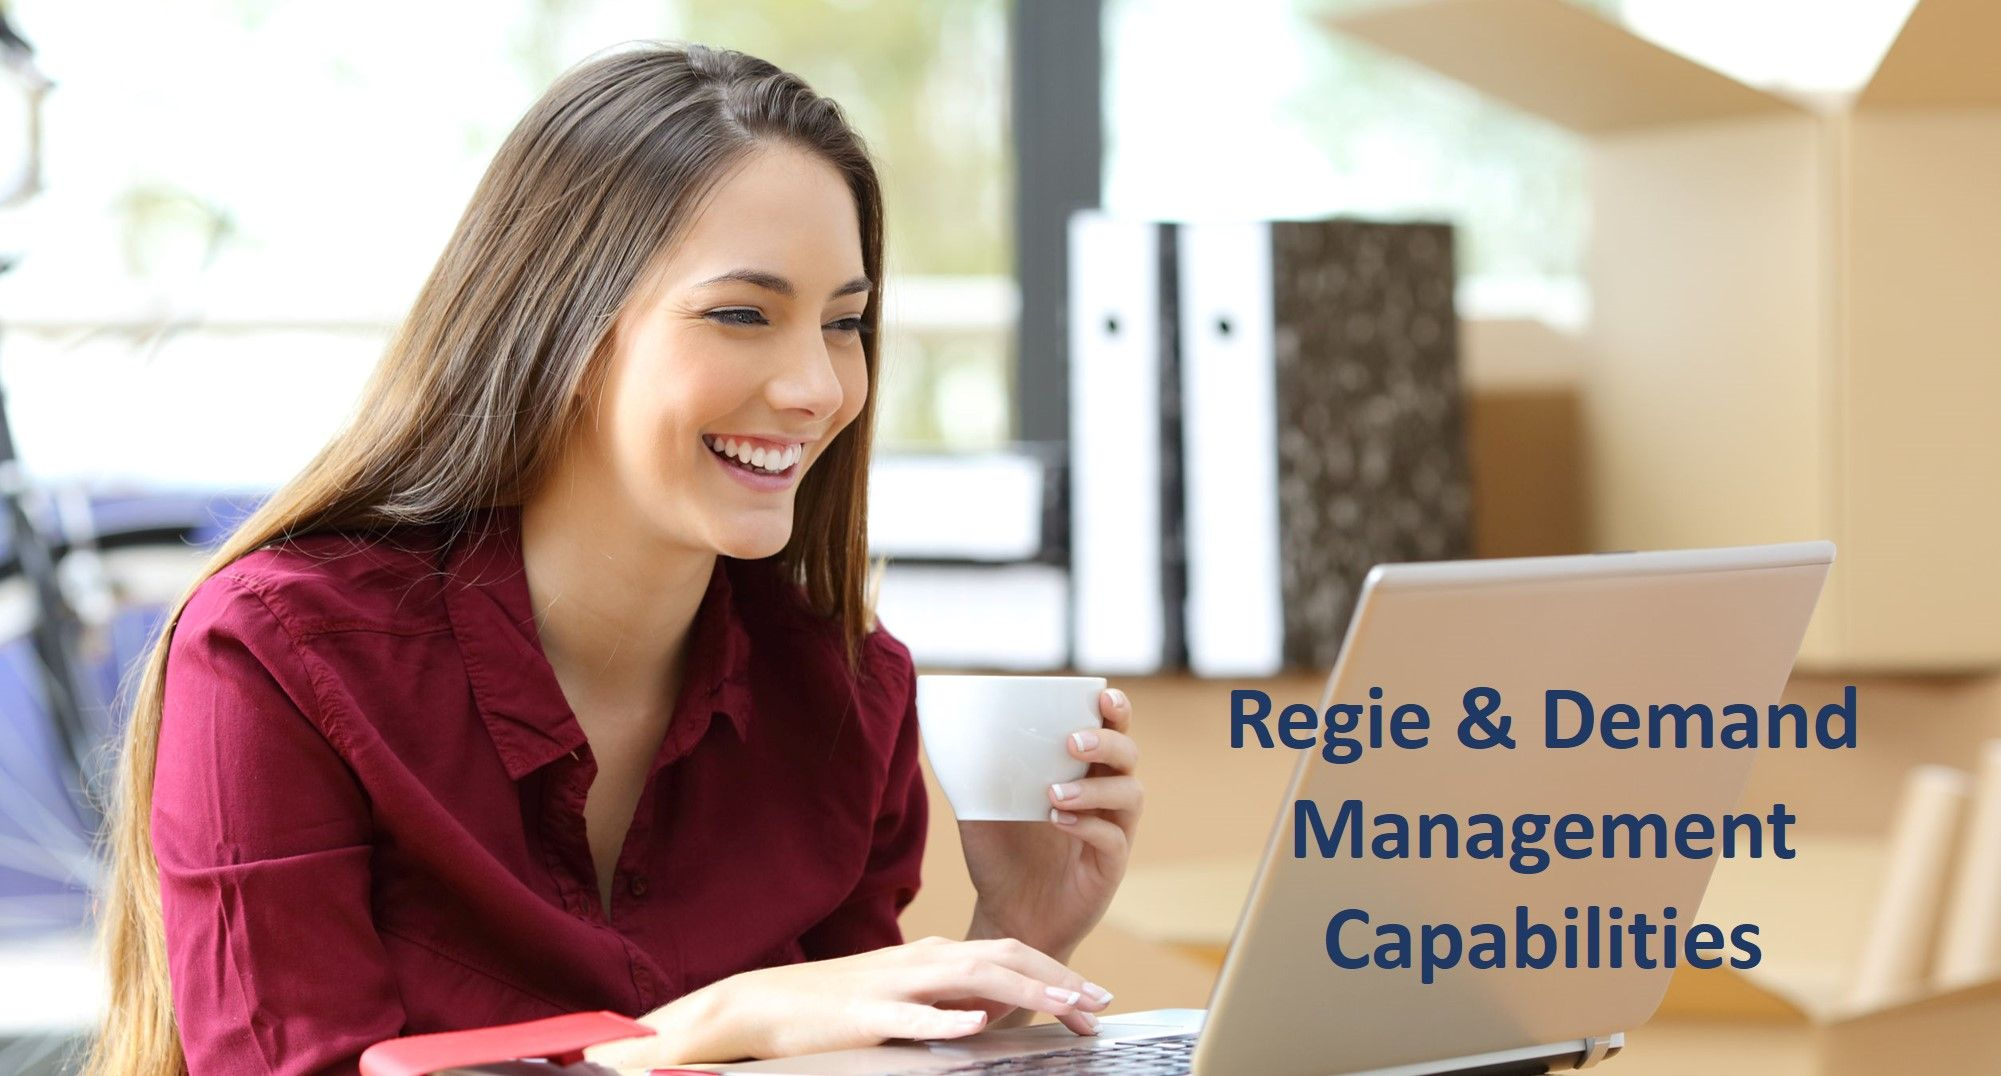 Wiki Regie en demand management capabilities